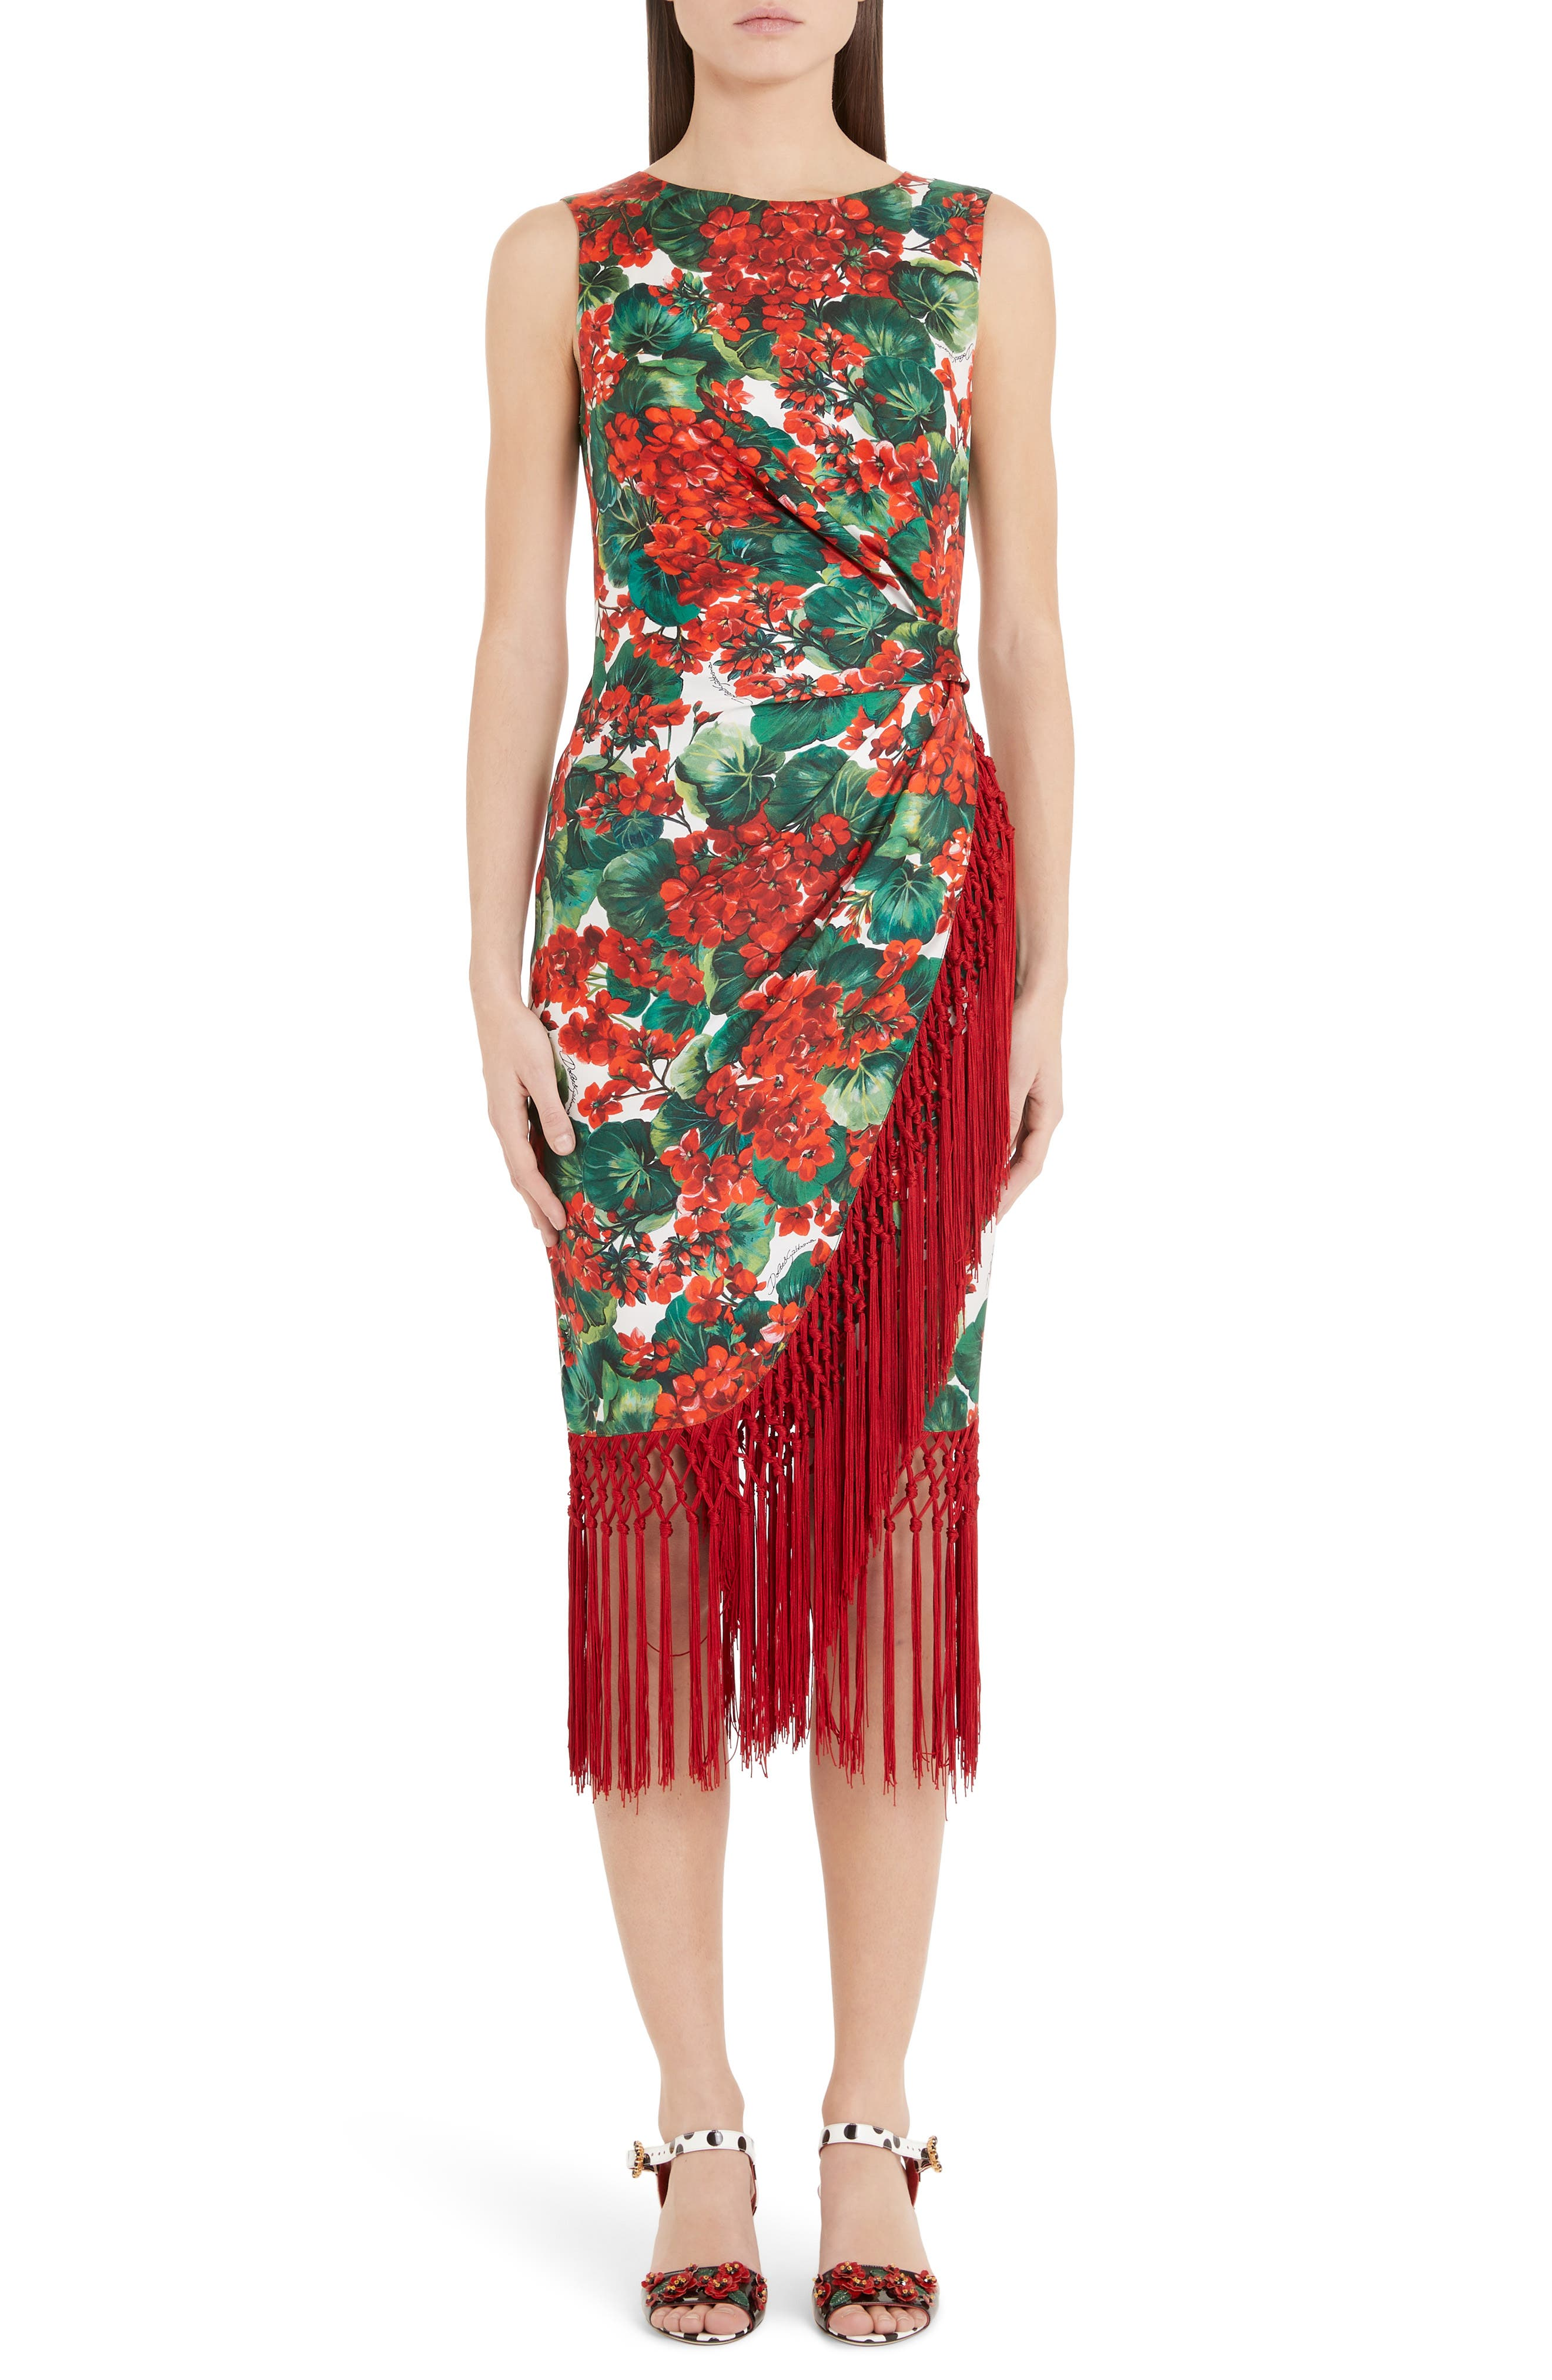 d8cd91a99 dolce and gabbana dresses | Nordstrom